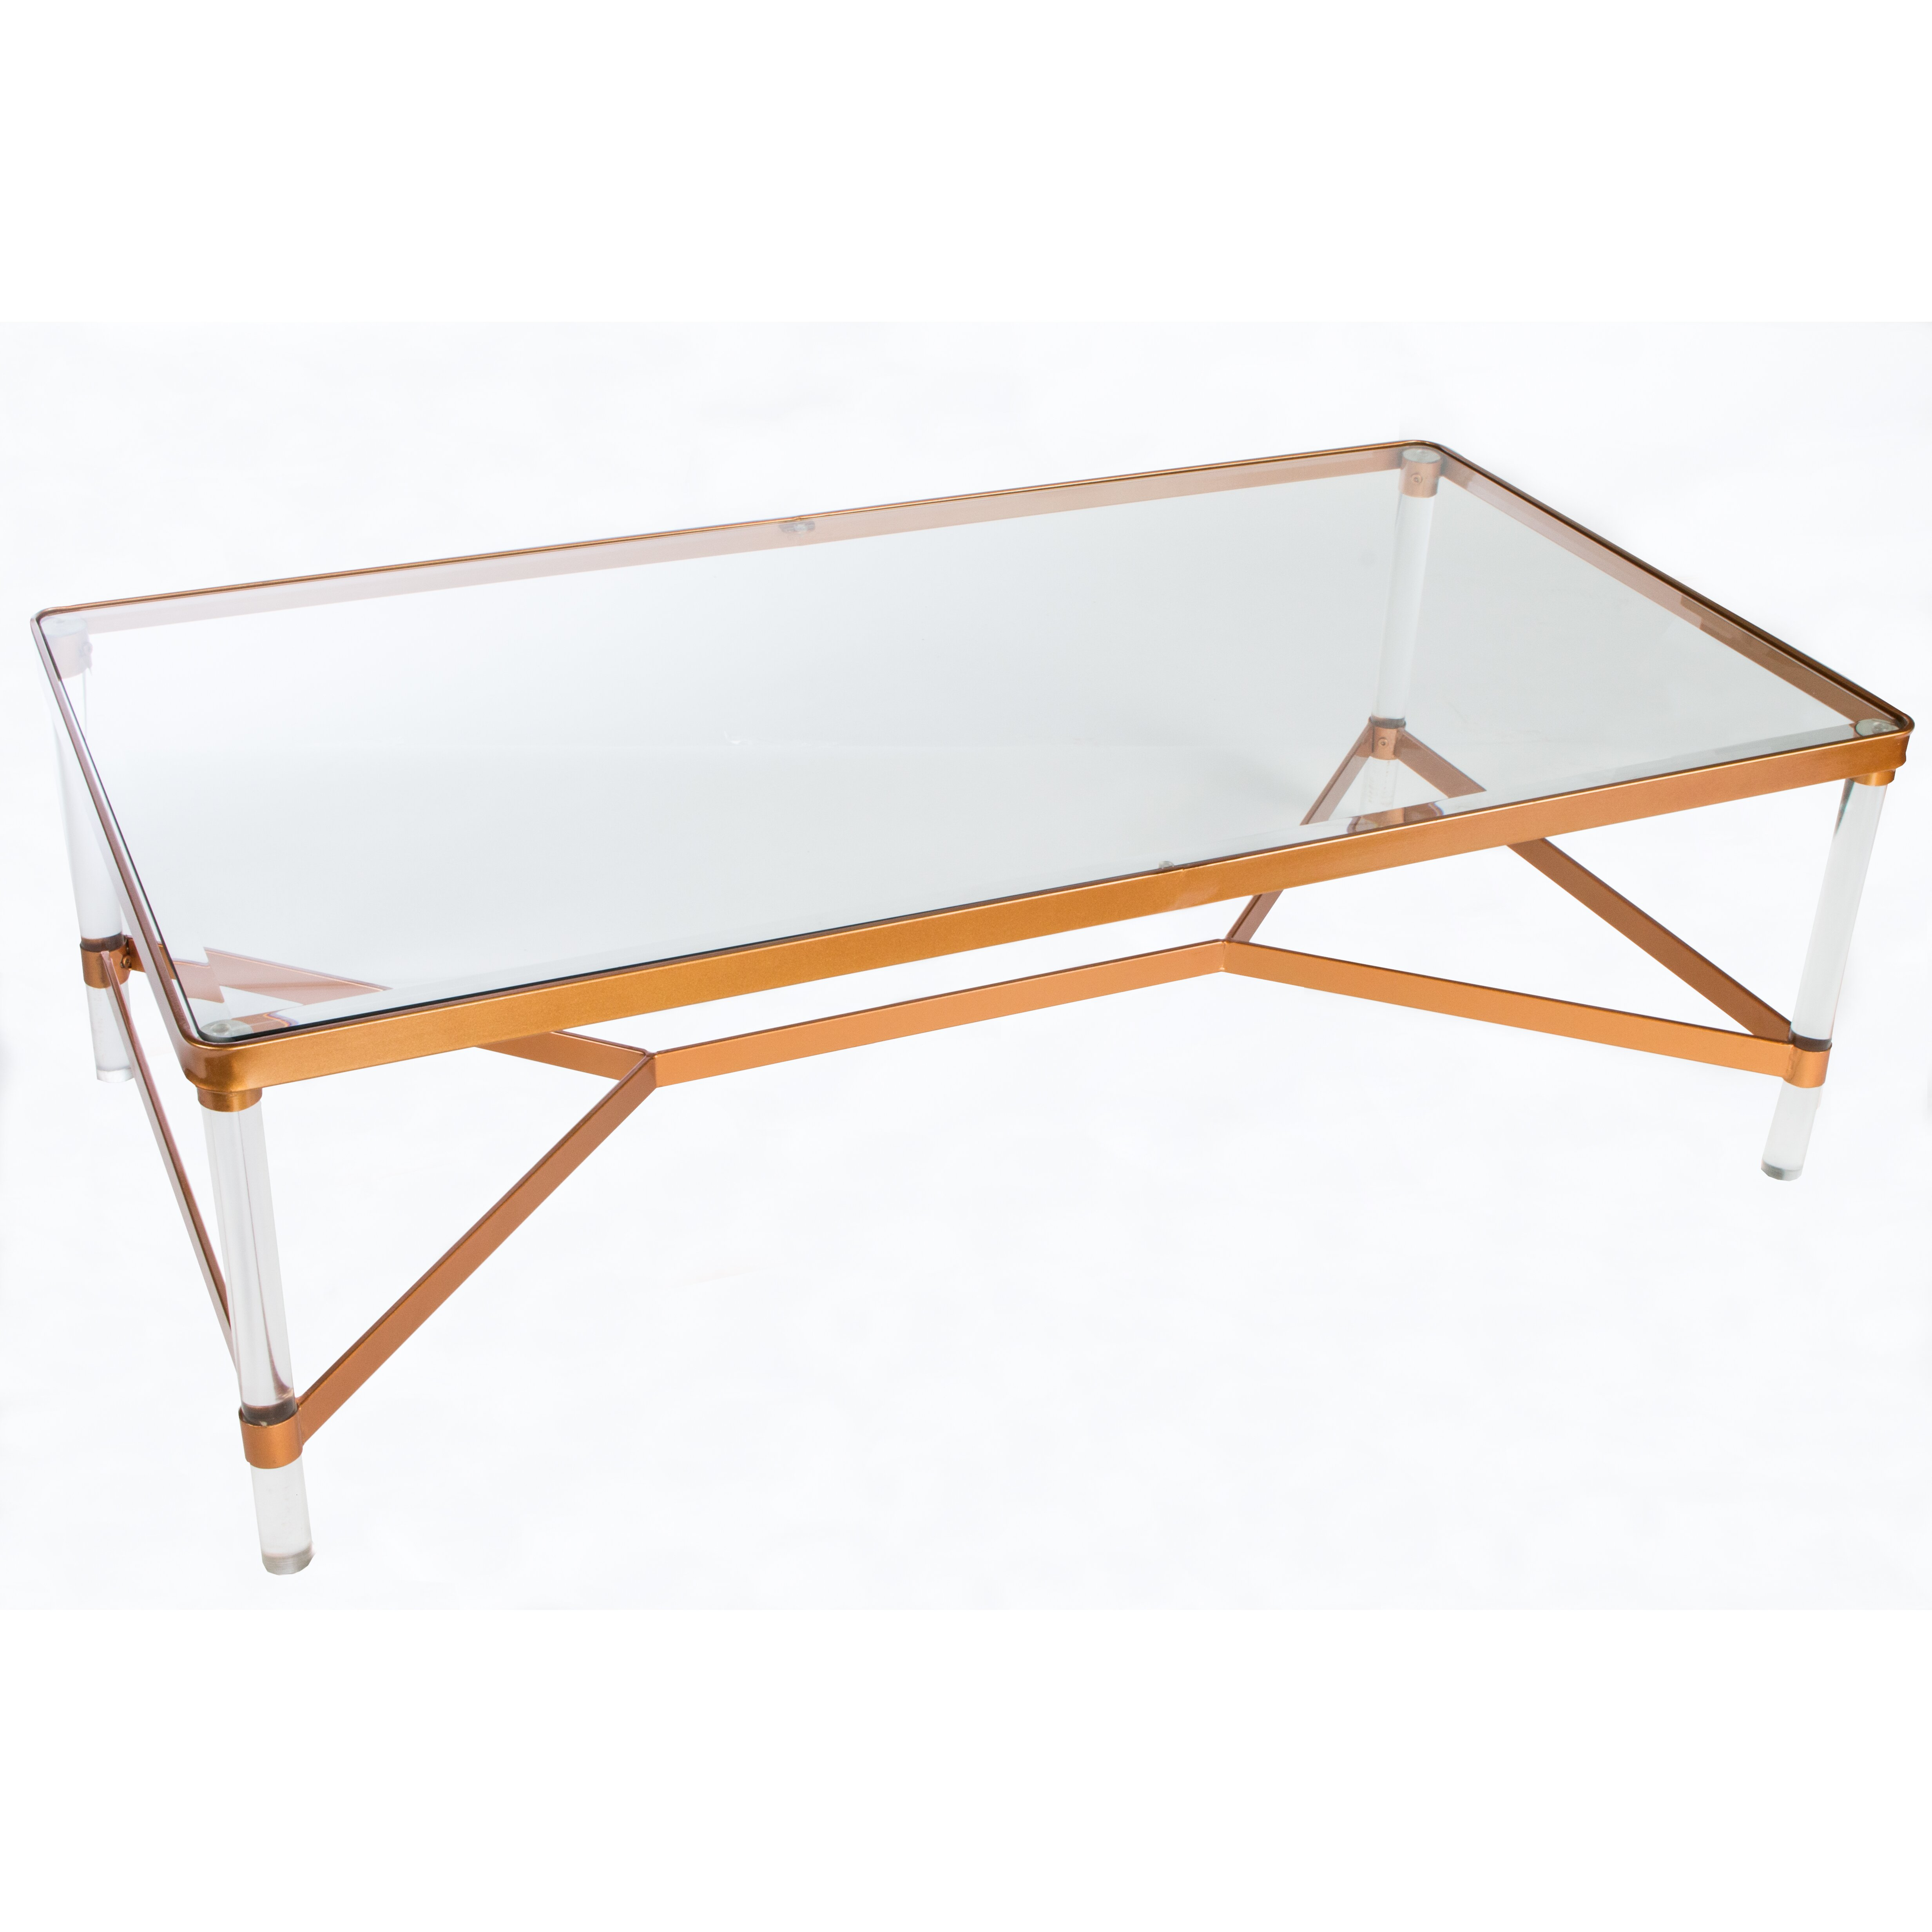 Acrylic And Glass Coffee Table: Statements By J Mireille Acrylic Coffee Table & Reviews